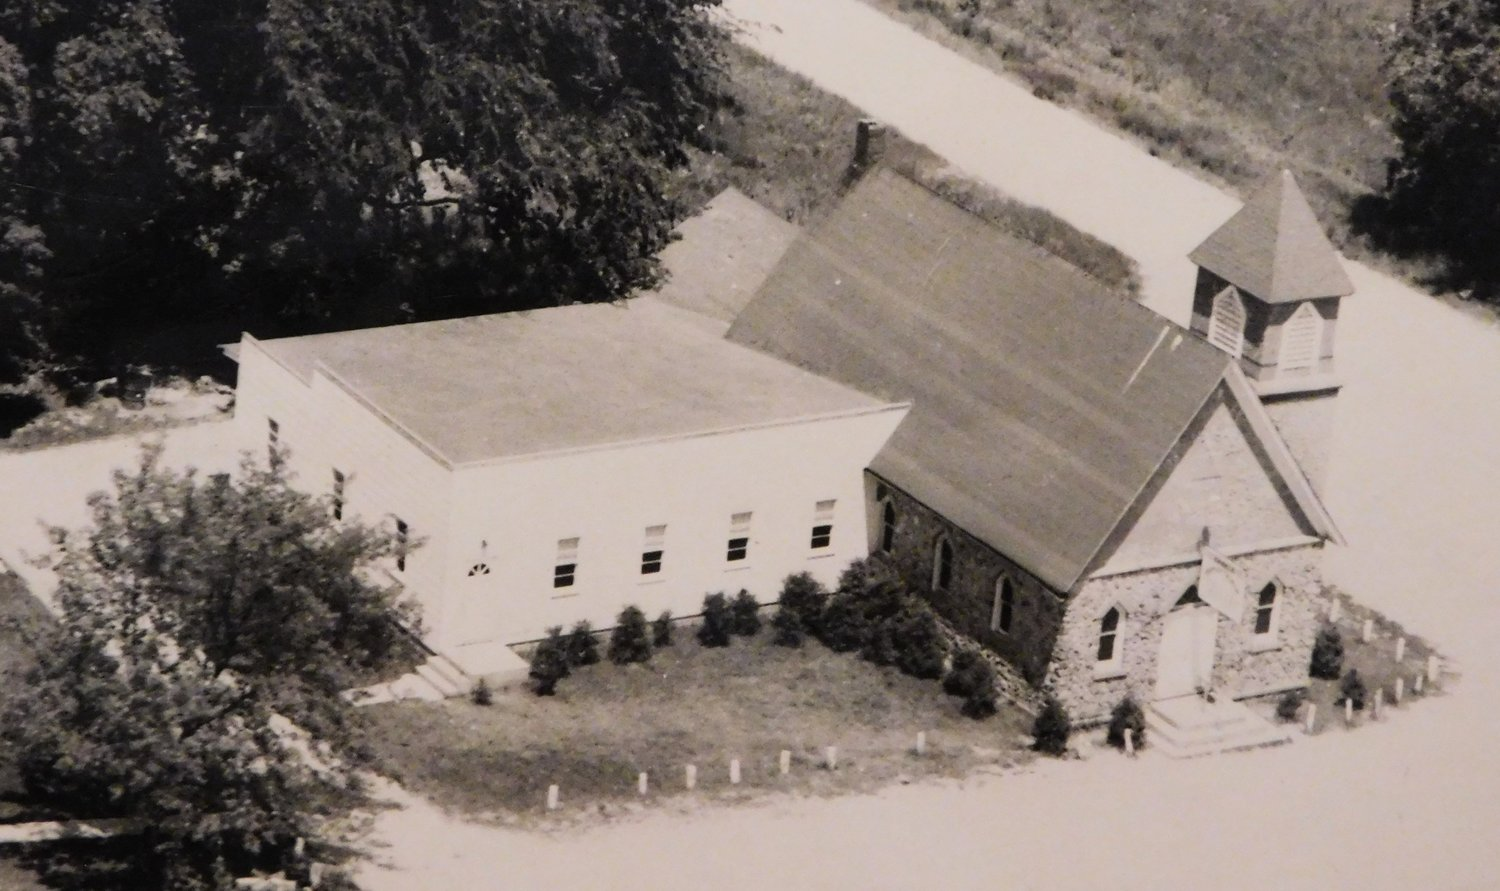 The stone facaded Skeels Baptist Church with its addition in 1983.